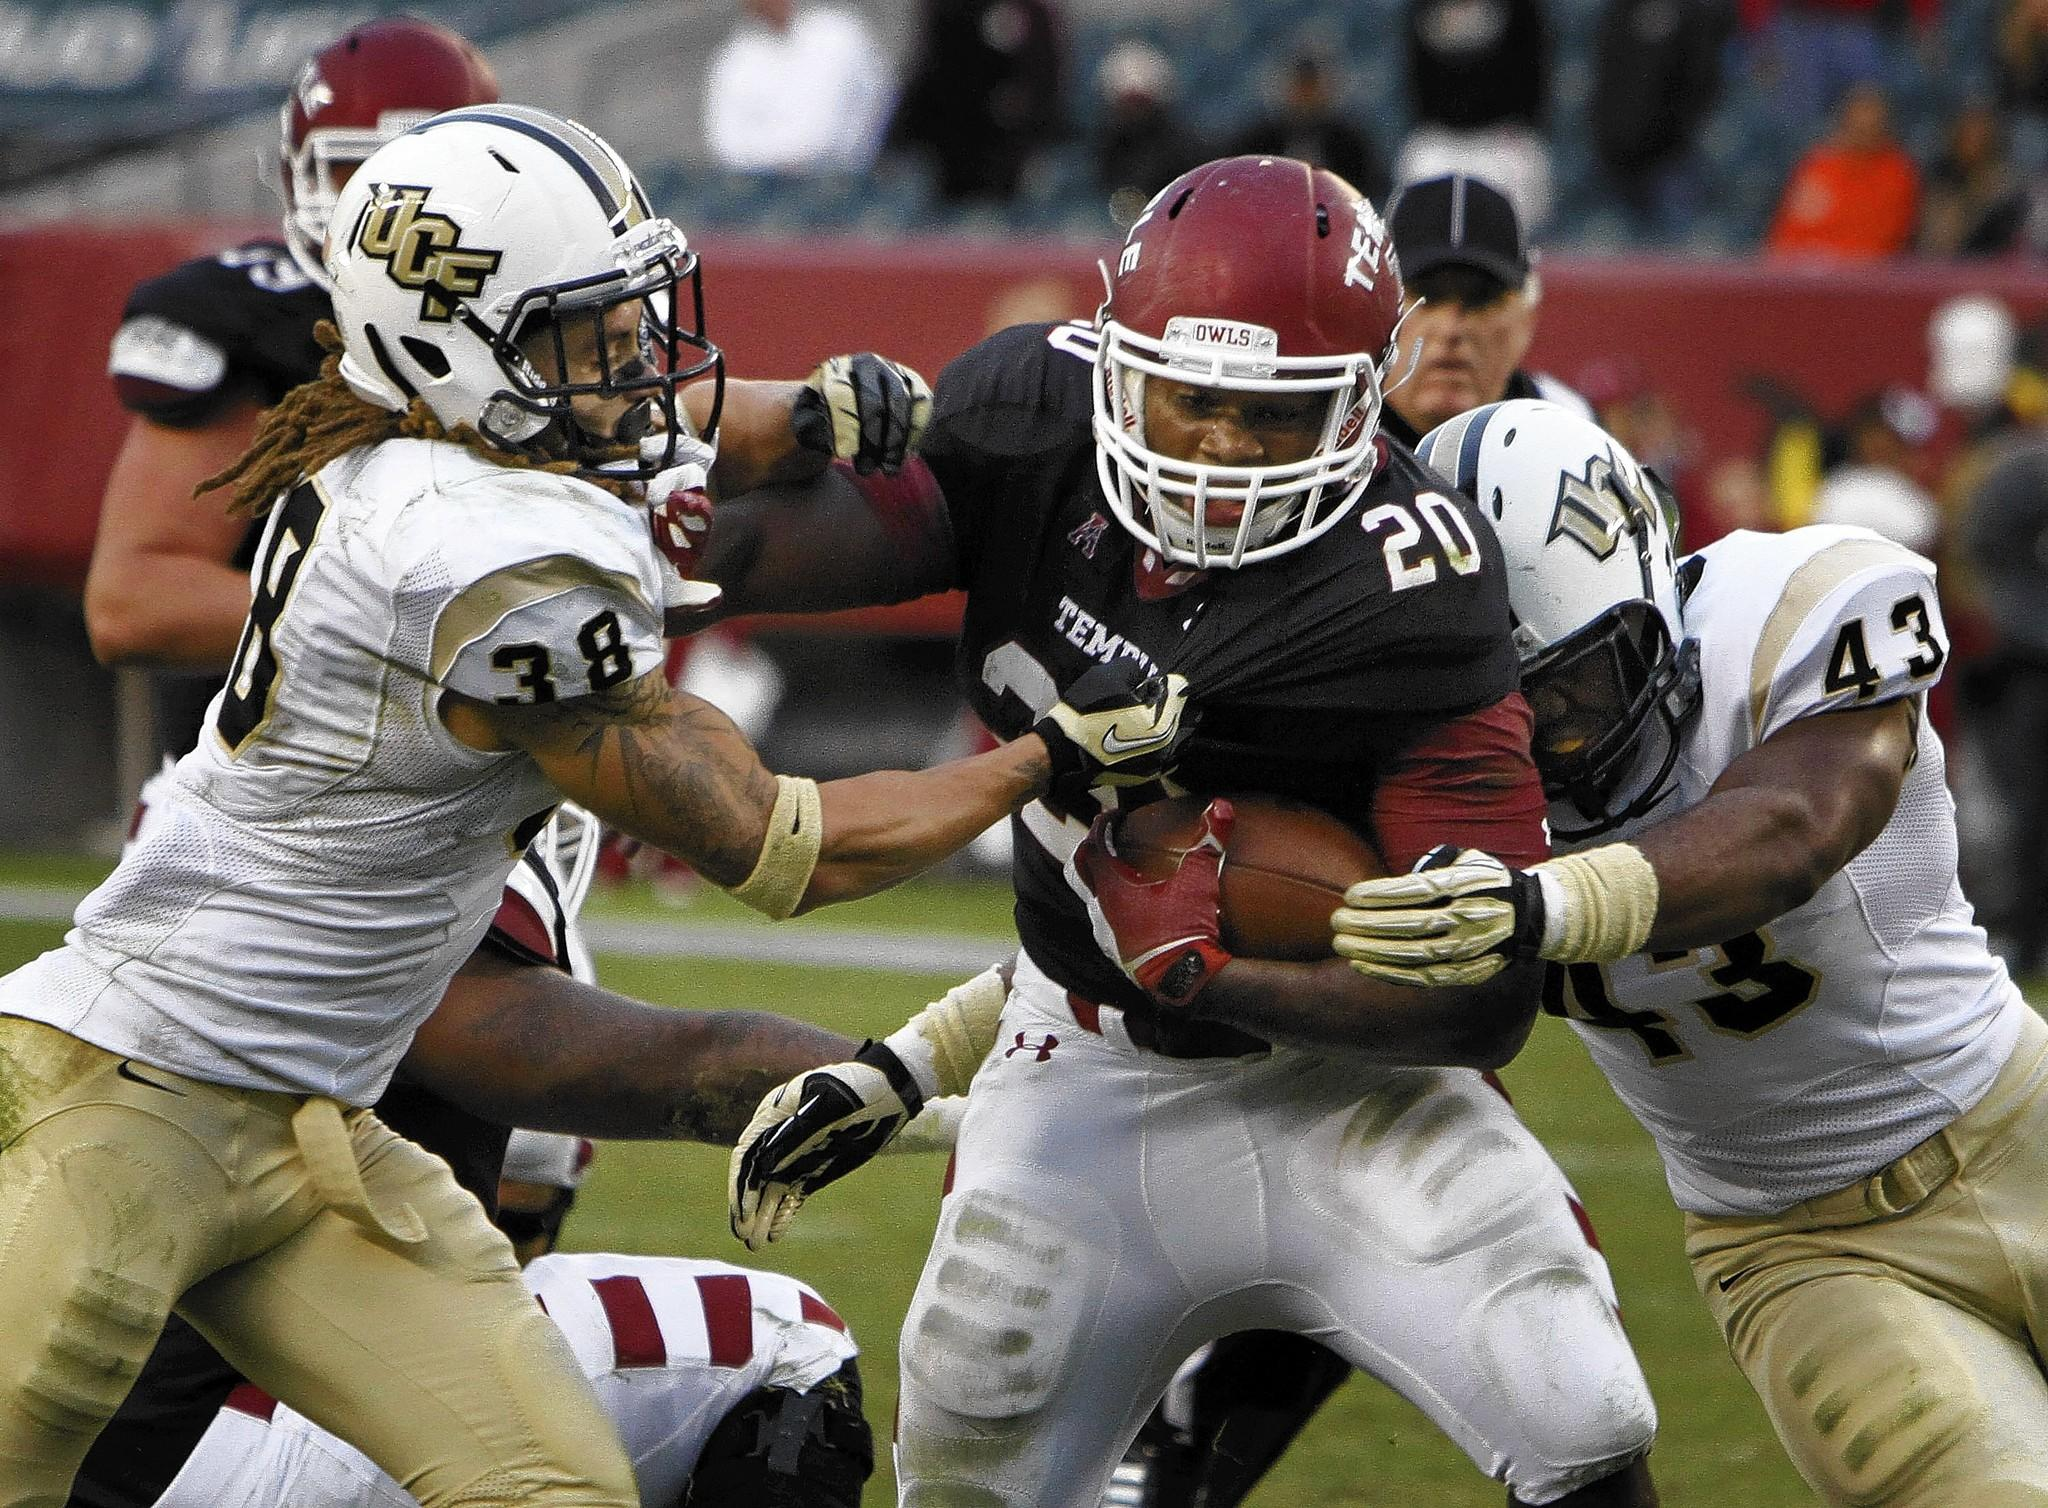 Kenneth Harper, center, of the Temple Owls runs through Jordan Ozerities, left, and Deondre Barnett, right, of the Central Florida Knights in Philadelphia on Saturday, Nov. 16, 2013. (Michael S. Writz/Philadelphia Inquirer/MCT) ORG XMIT: 1145681 ** OUTS - ELSENT, FPG, TCN - OUTS **